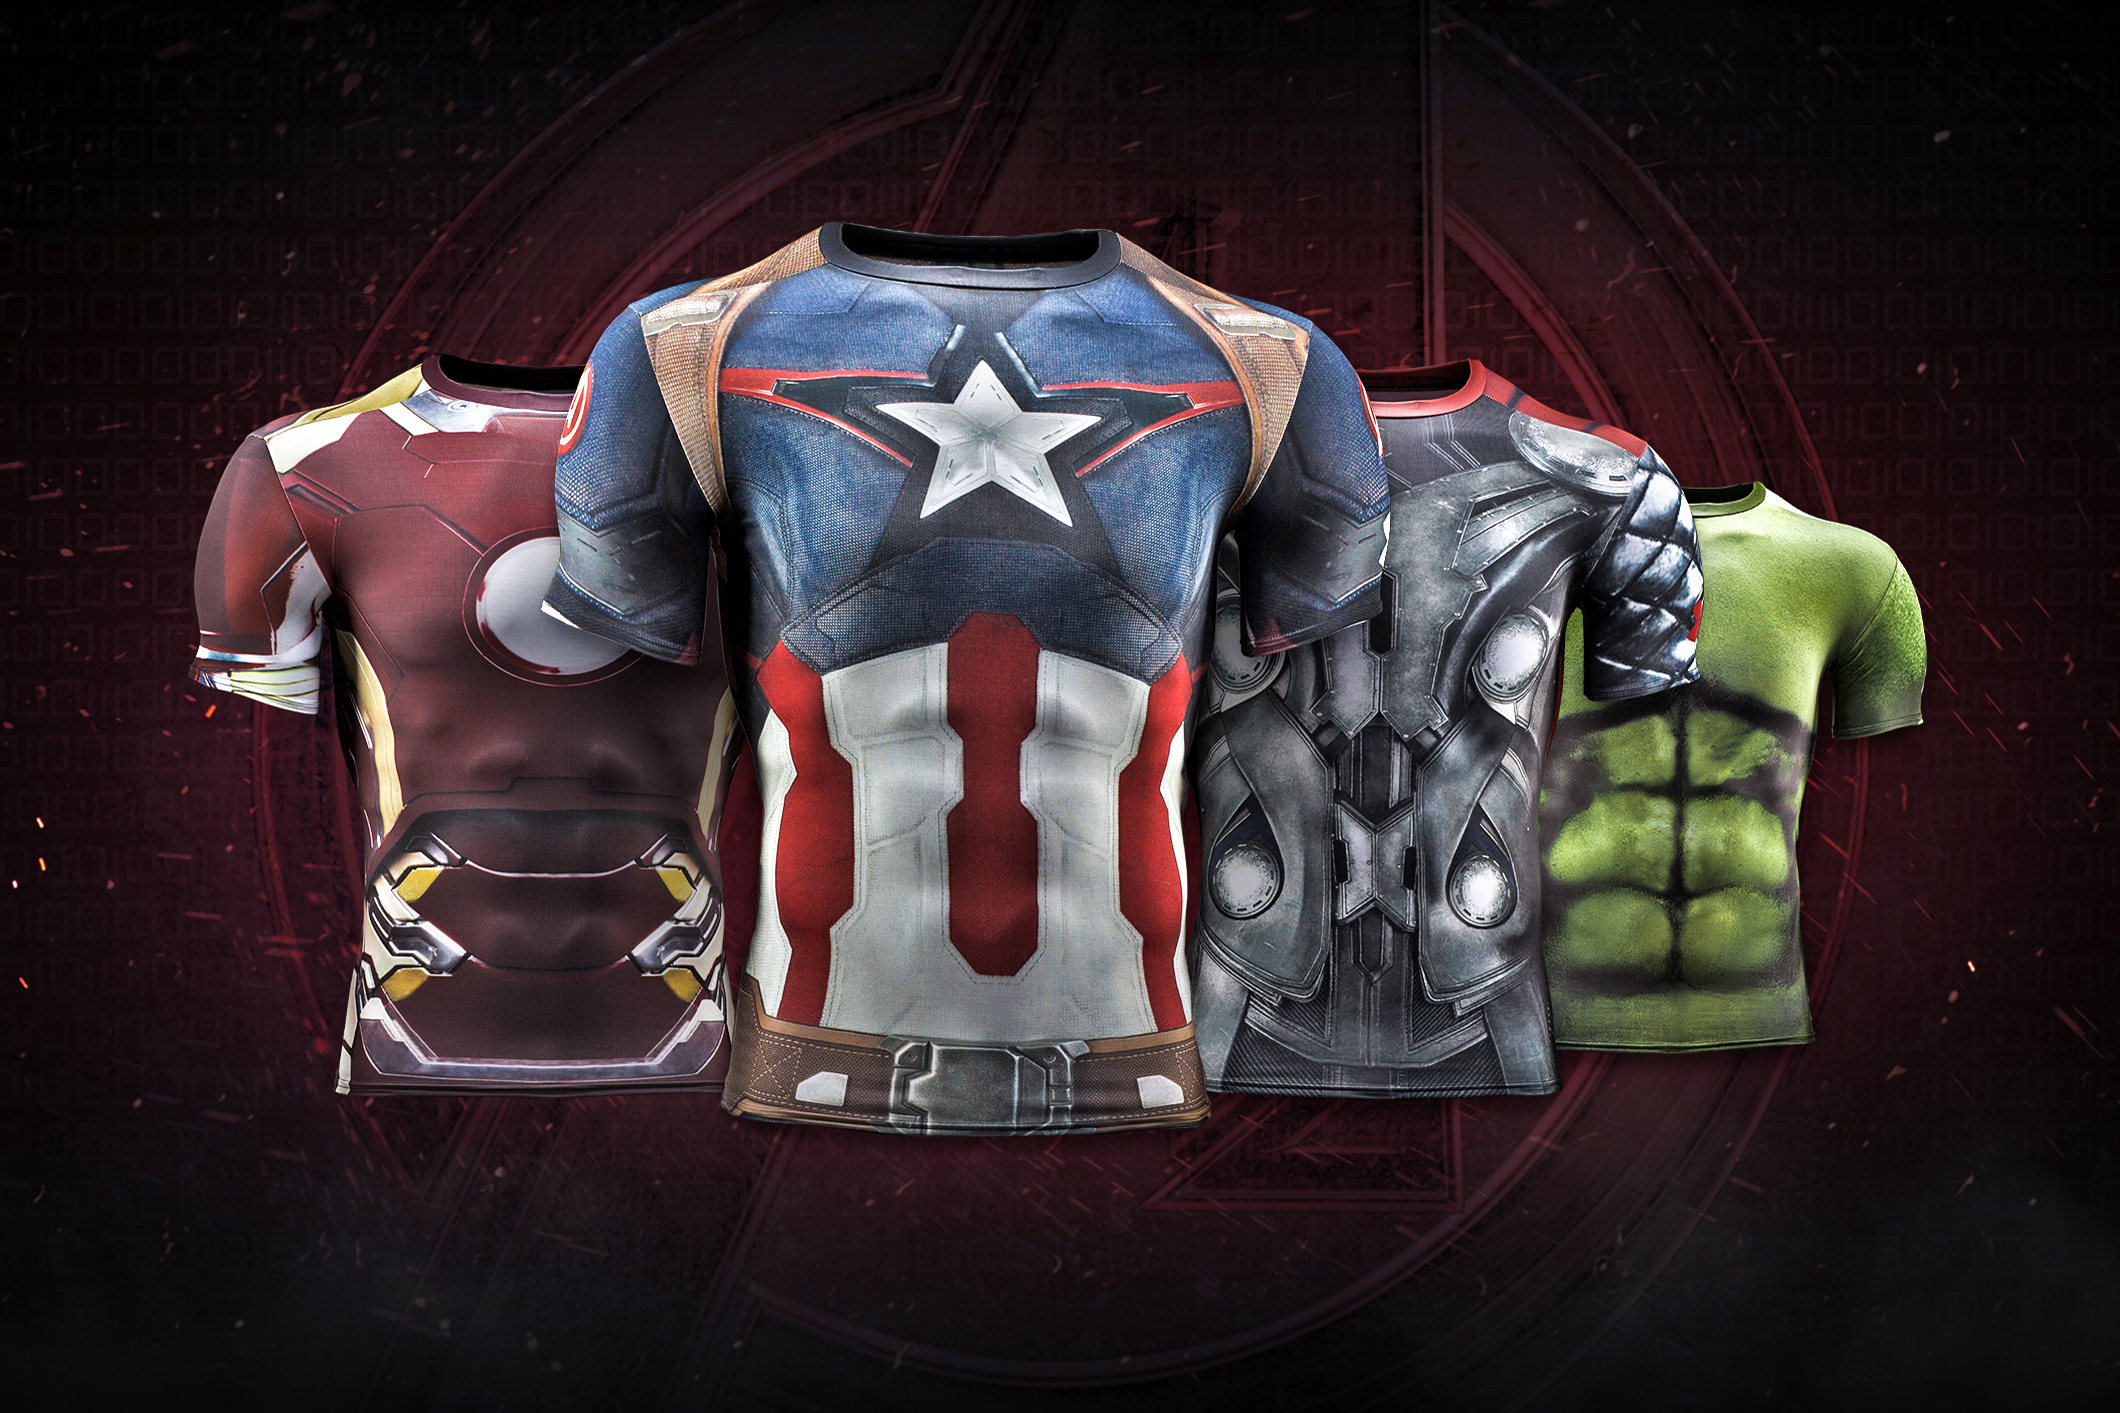 bomba Juntar Injusto  Avengers: Age of Ultron to Feature Under Armour Gear You Can Buy | Money